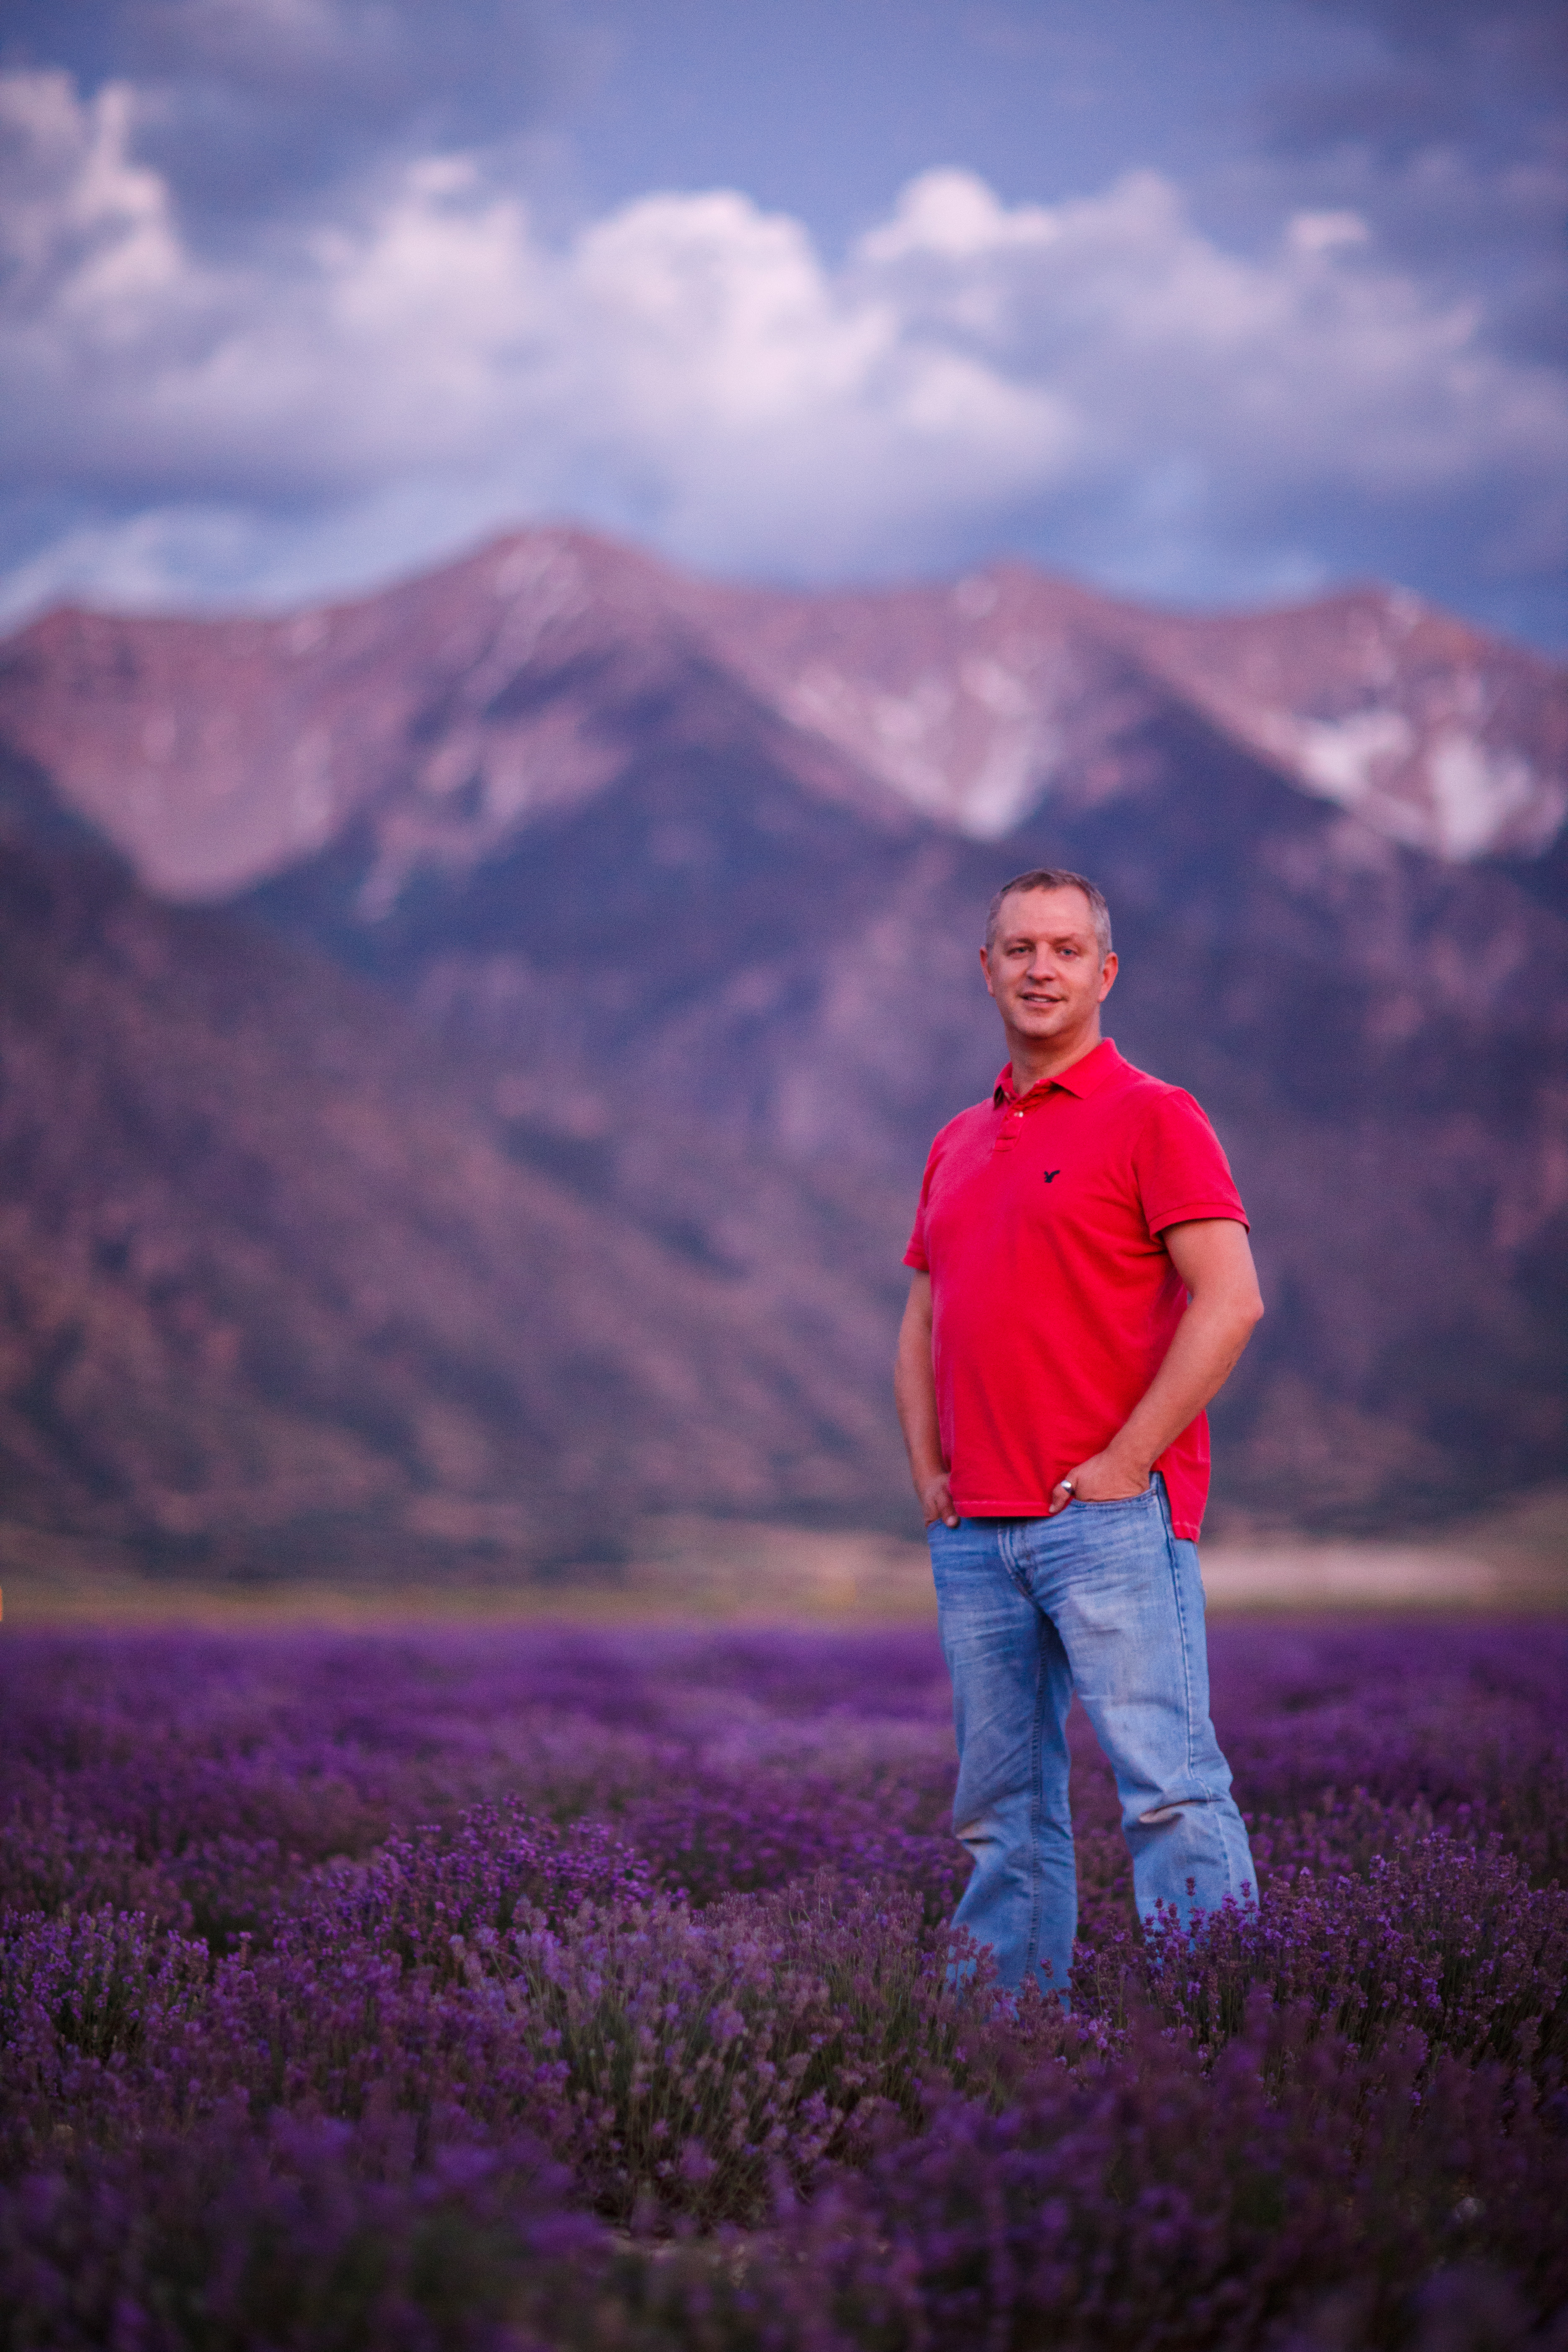 dav.d at the Lavender Fields of Mona, Utah and photographed by Nicolesy